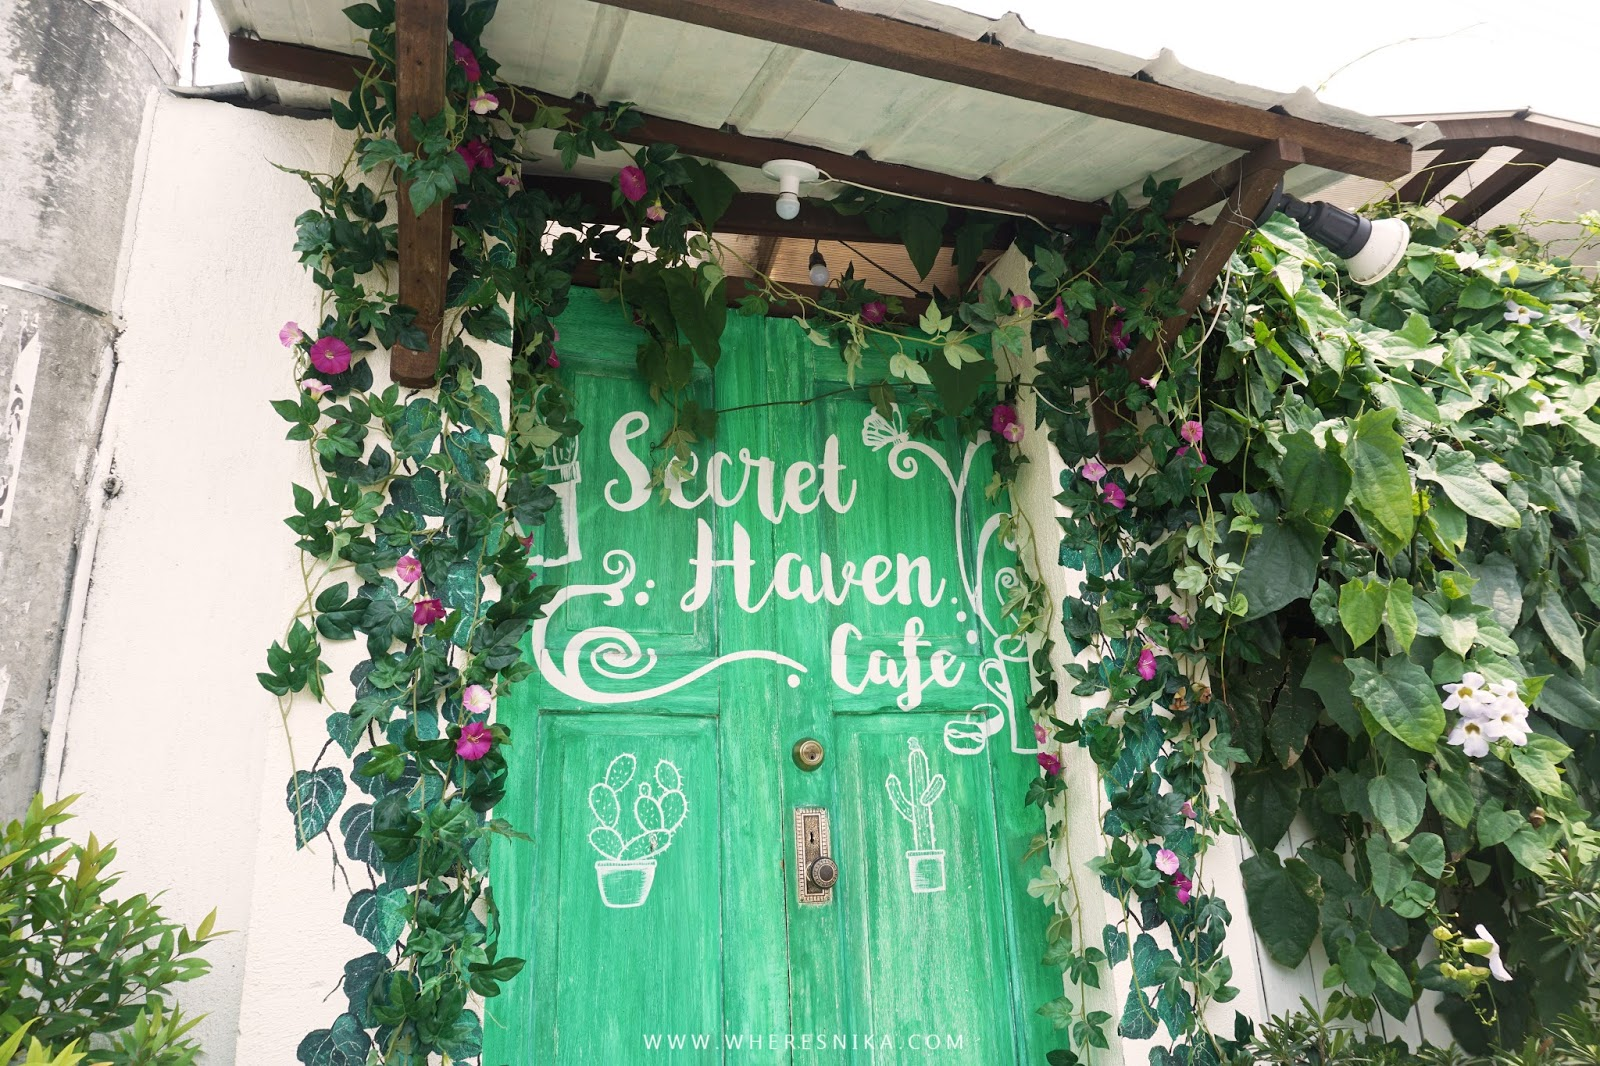 secret haven cafe